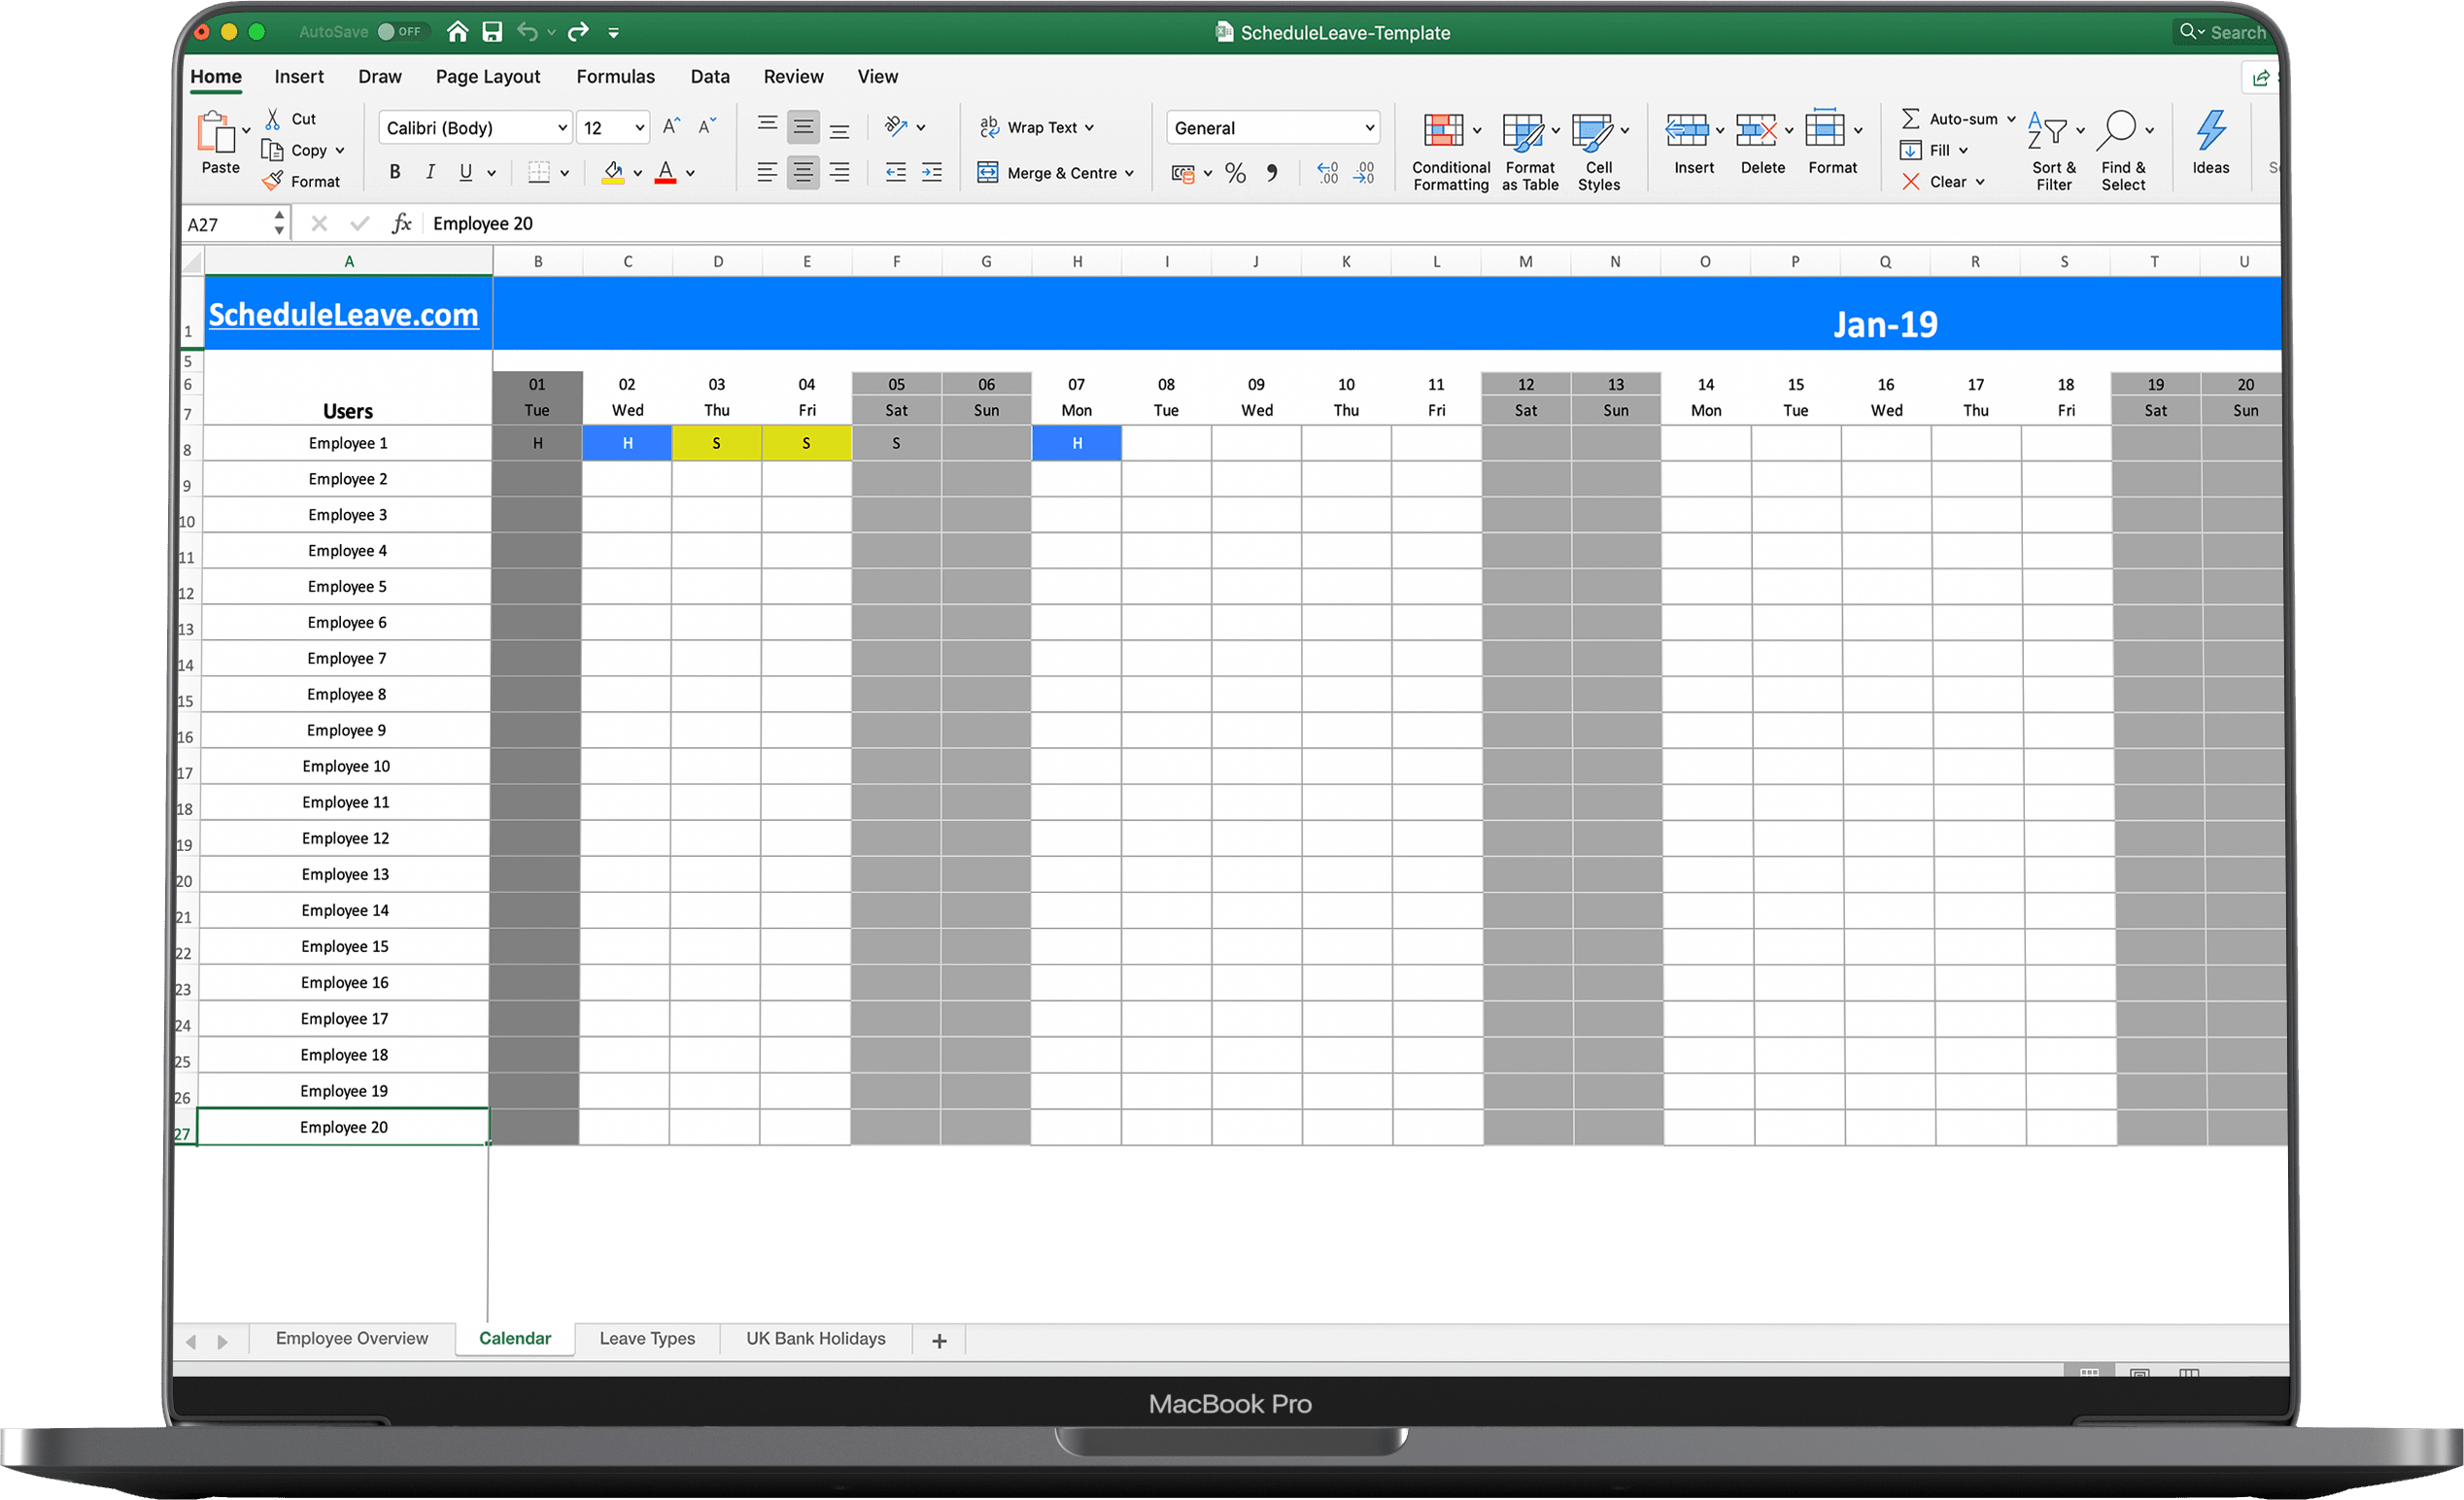 Free Leave Holiday Tracker Spreadsheet 2020 Scheduleleave